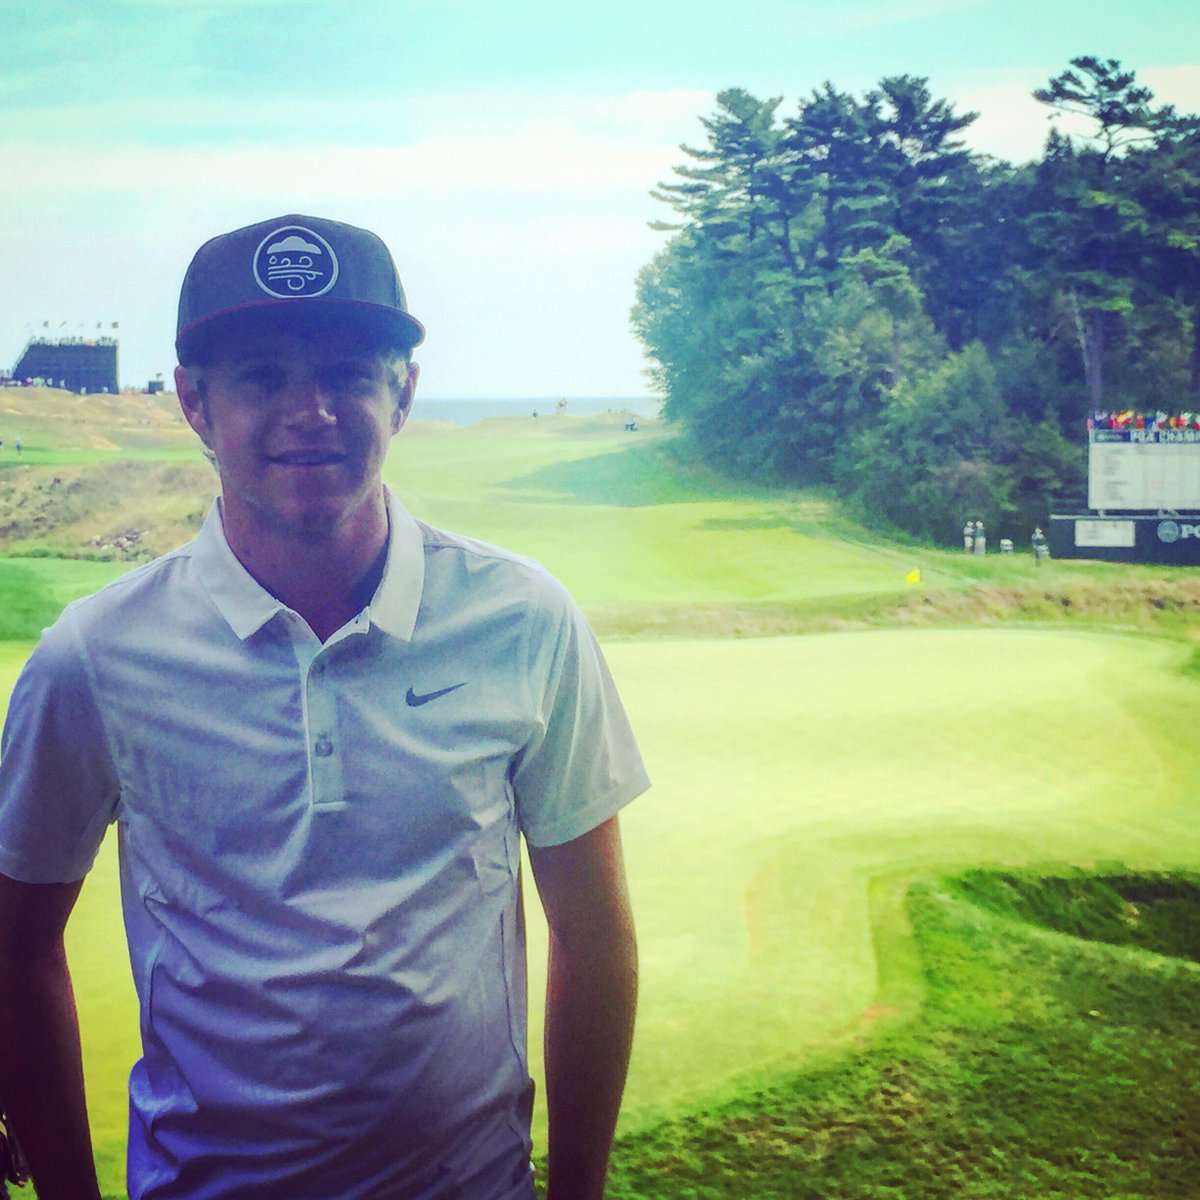 .@onedirection's @NiallOfficial is ready for an exciting #PGAChamp finish! Are you? http://t.co/NxjLNj2LdL